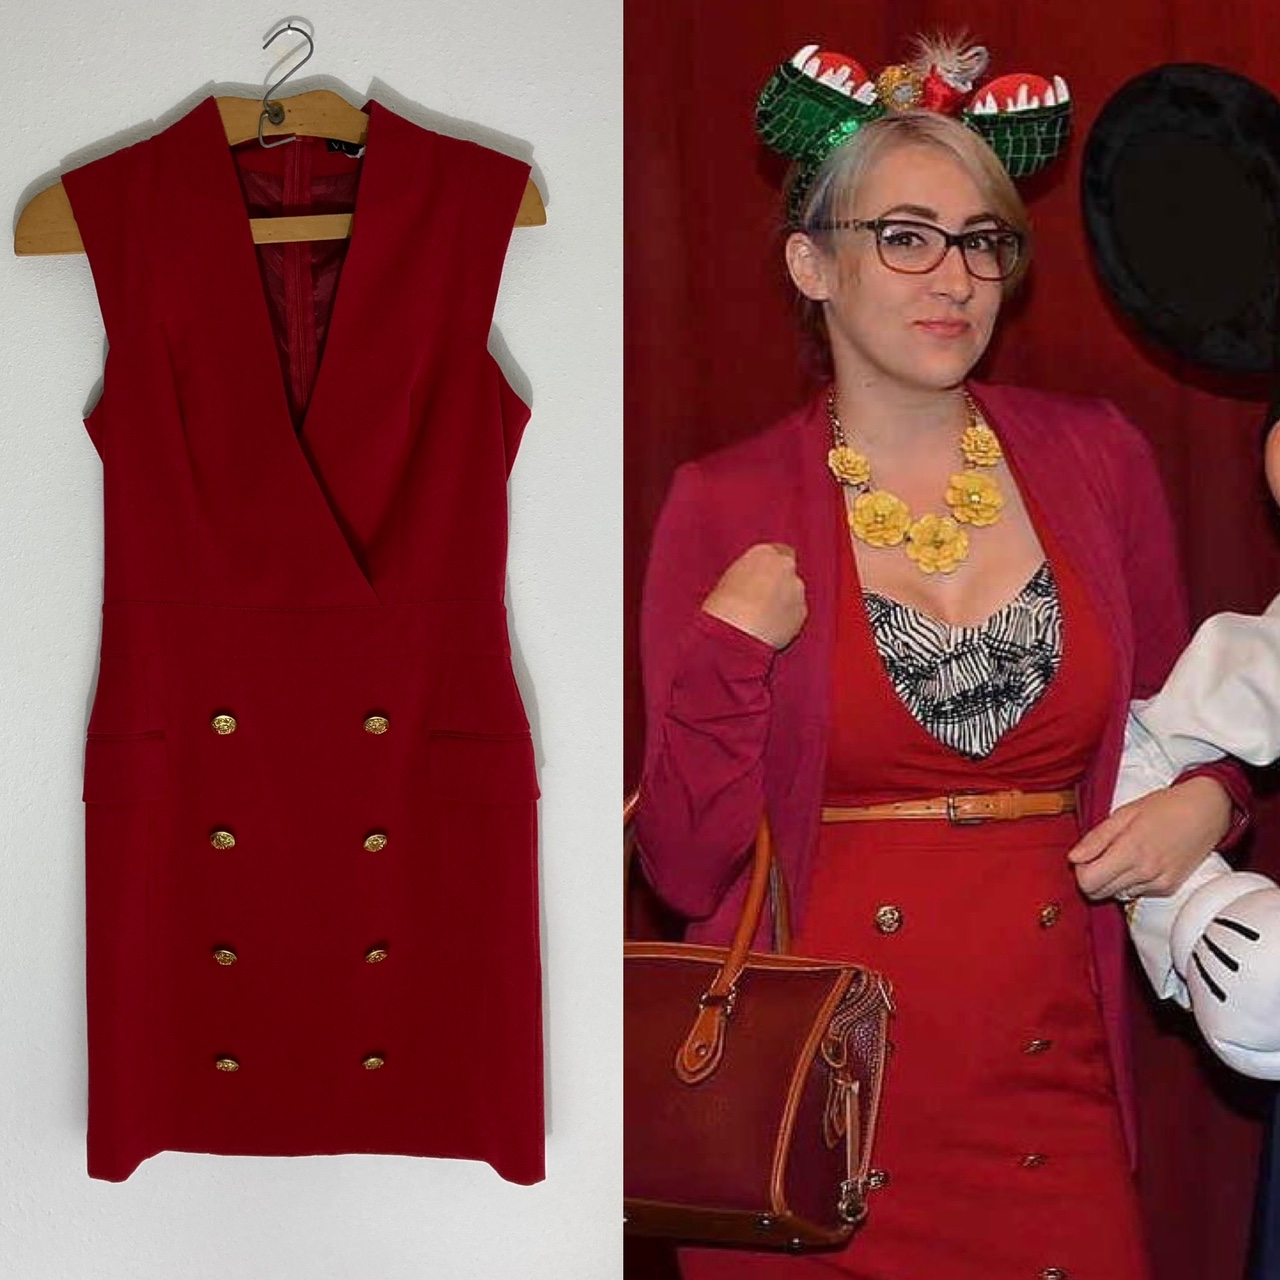 Product Image 1 - Venus sleeveless red dress with